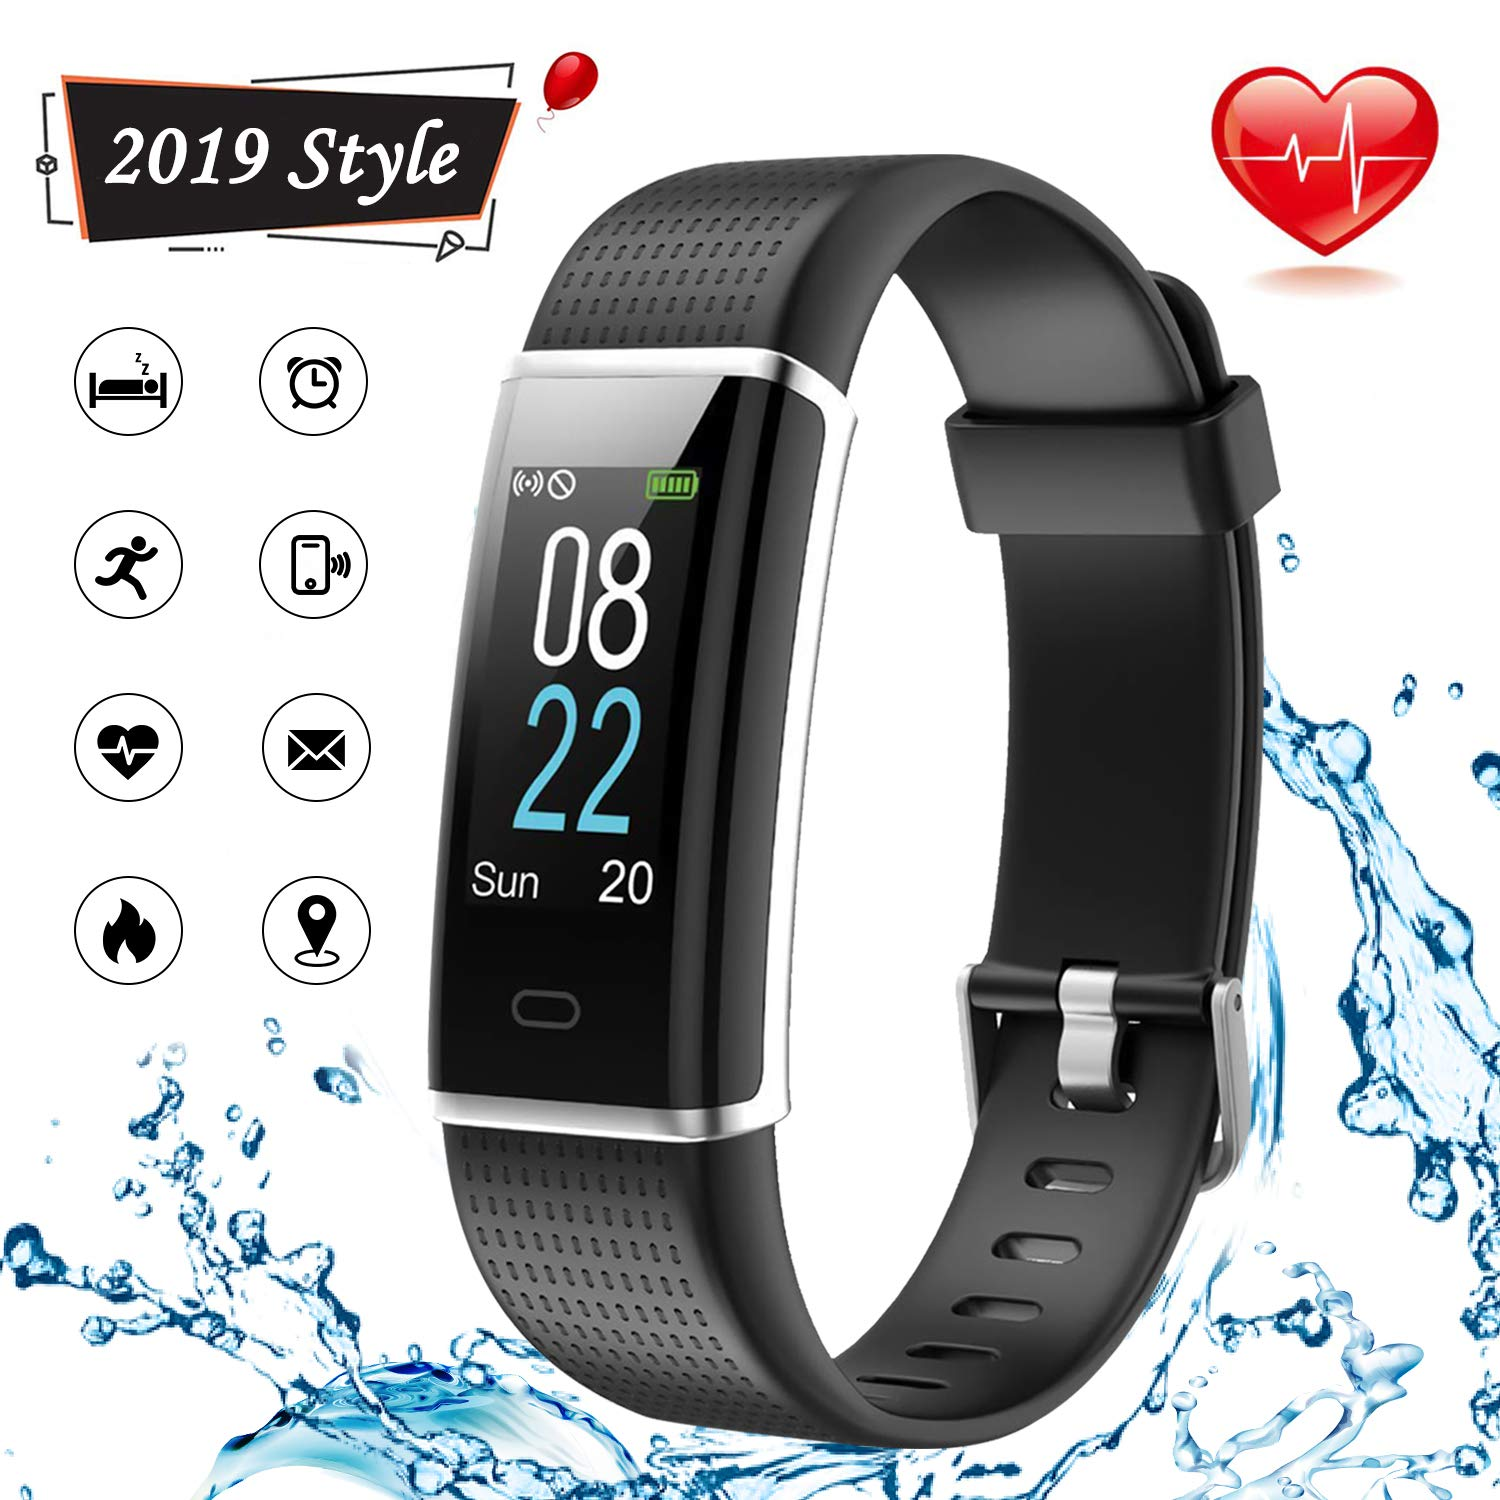 Lintelek Fitness Tracker, Color Screen Activity Tracker with Heart Rate Monitor